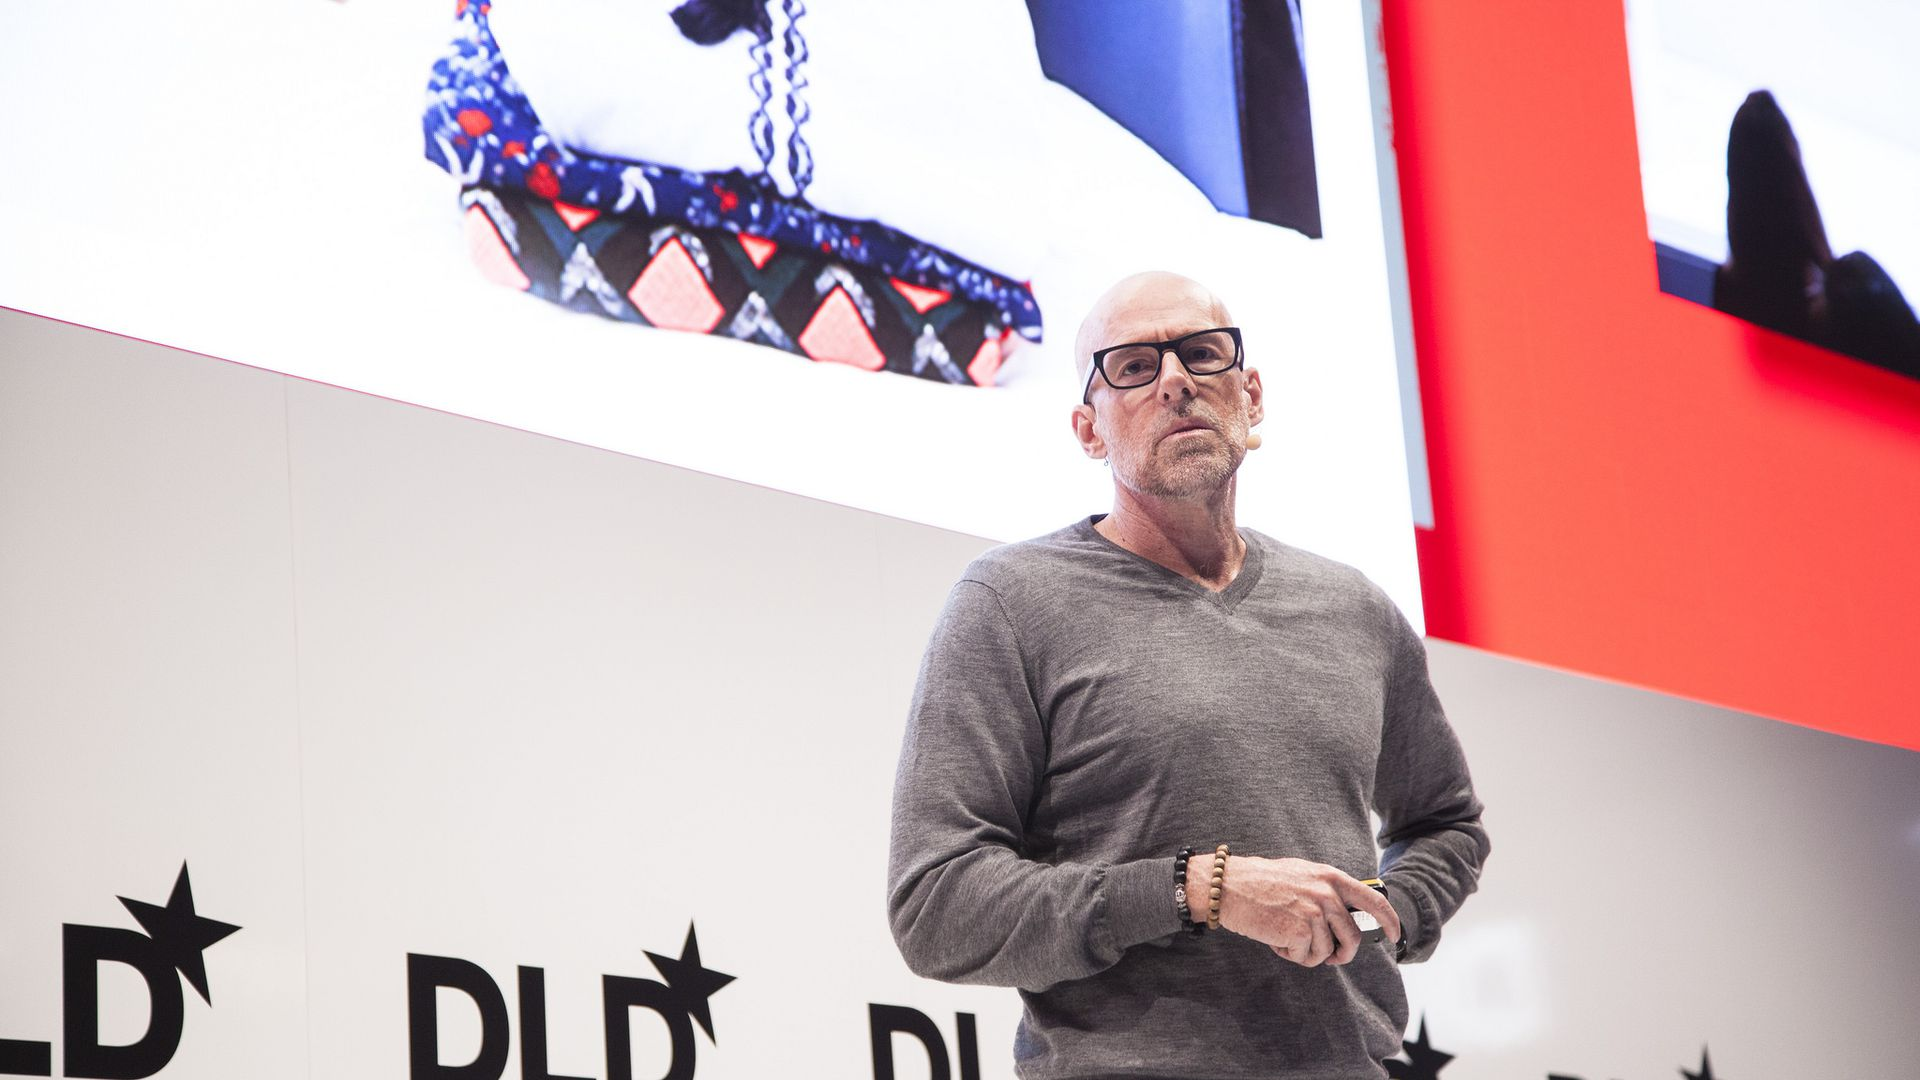 Scott Galloway, speaking at DLD18 in Munich, Germany